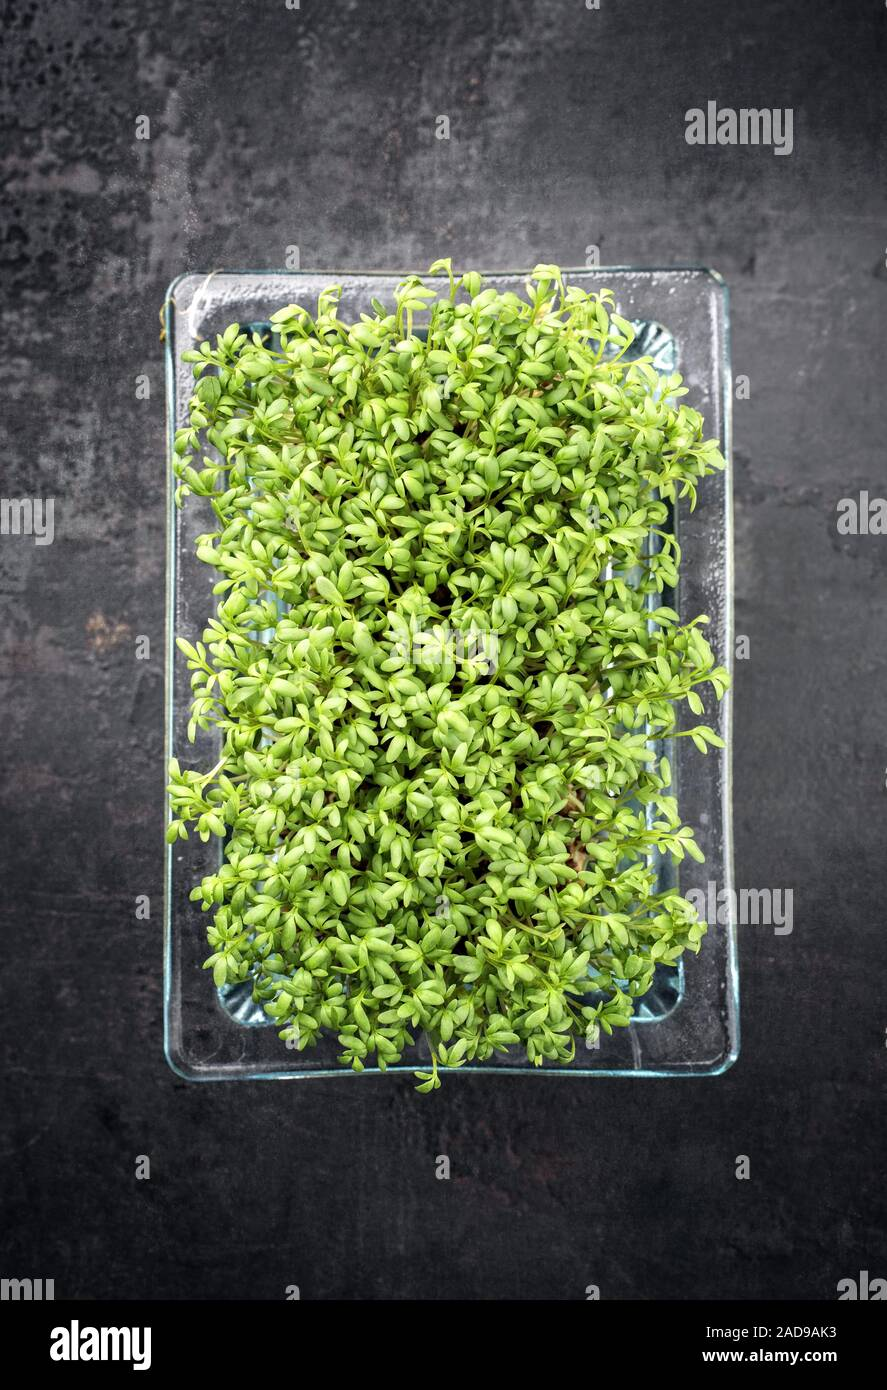 Fresh garden cress germ bud as top view on a black board with copy space Stock Photo